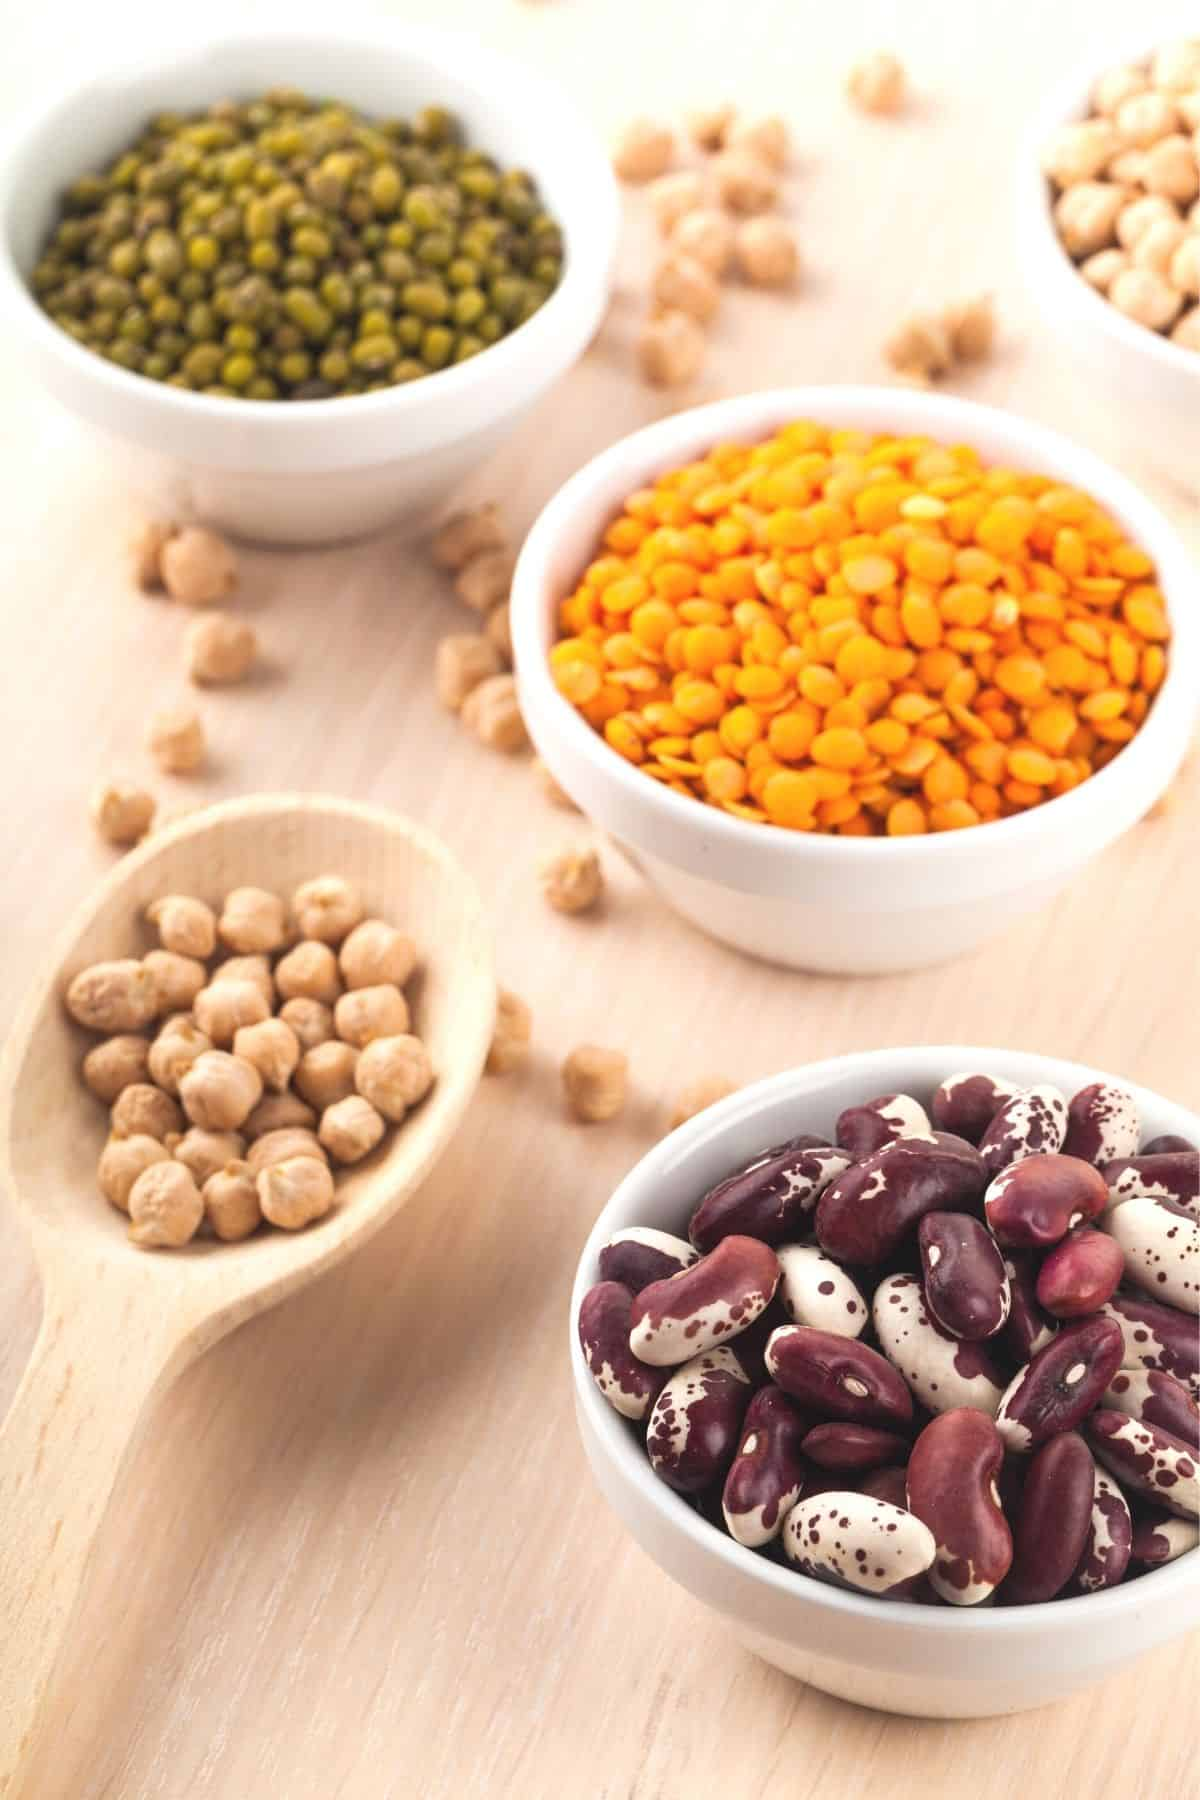 Bowls of dried beans and peas